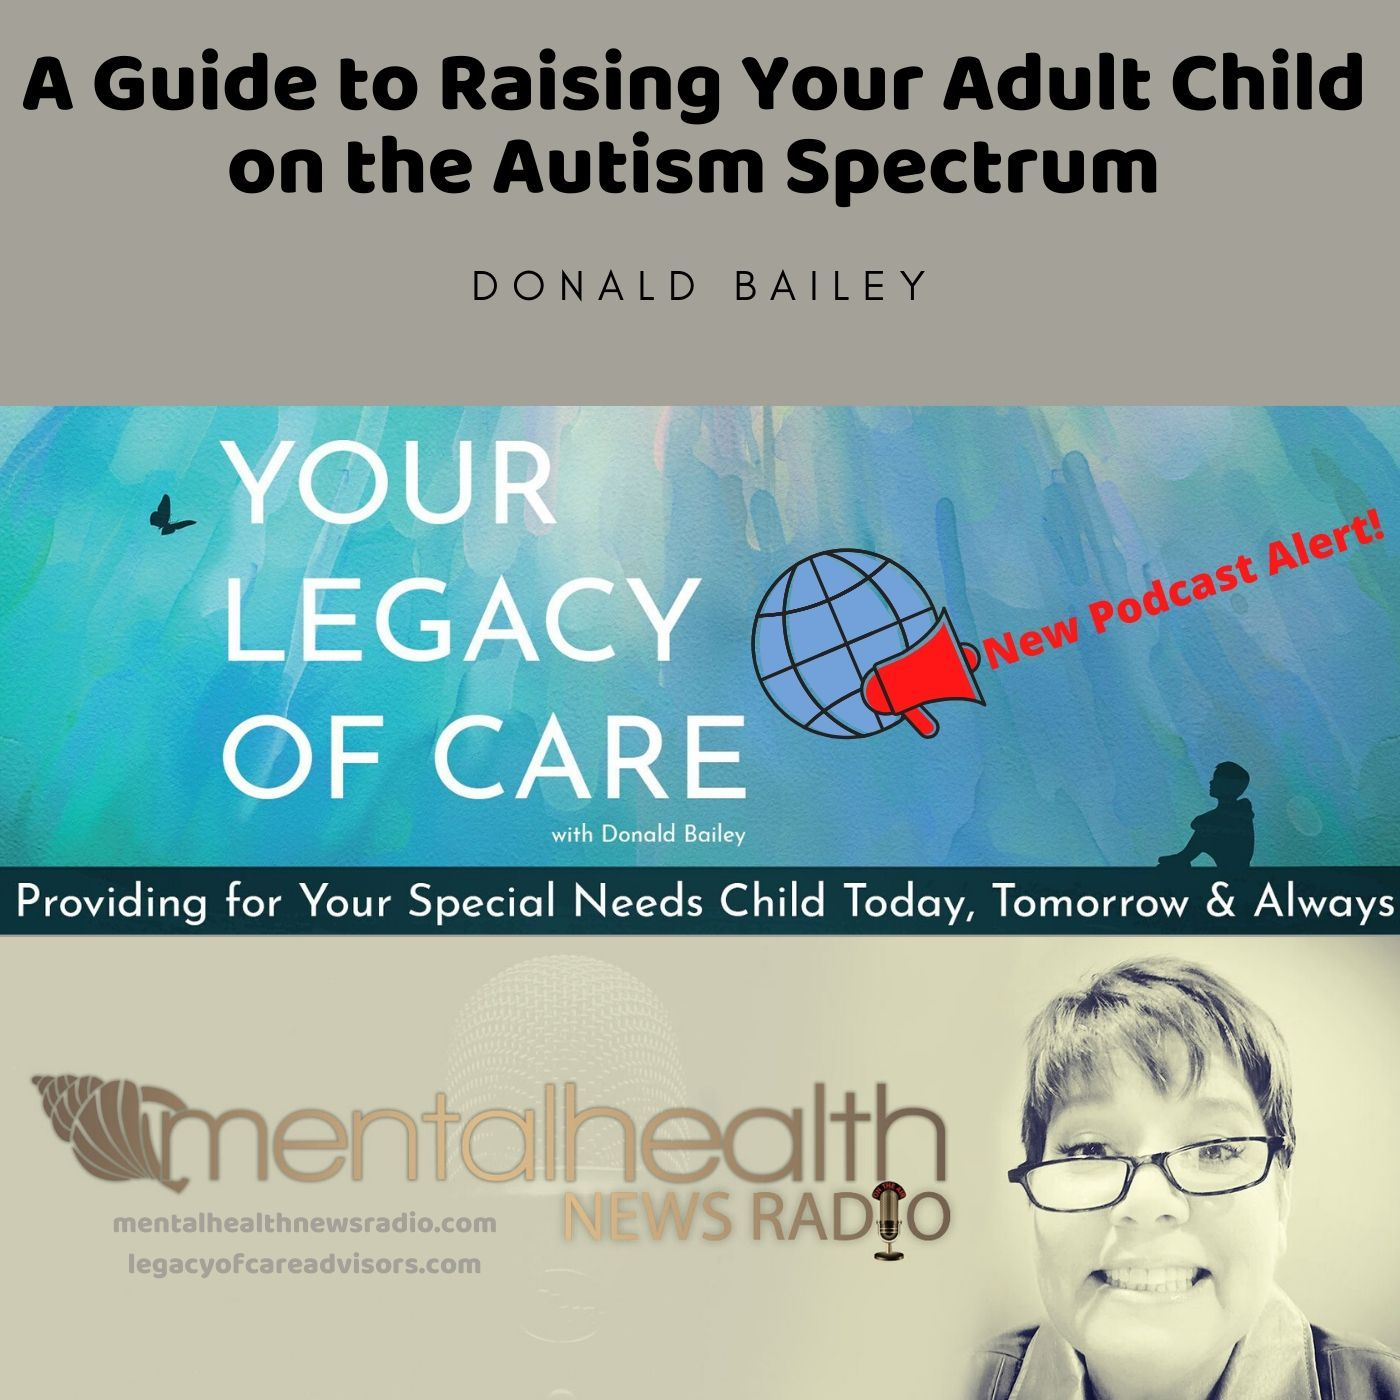 Mental Health News Radio - A Guide to Raising Your Adult Child on the Autism Spectrum